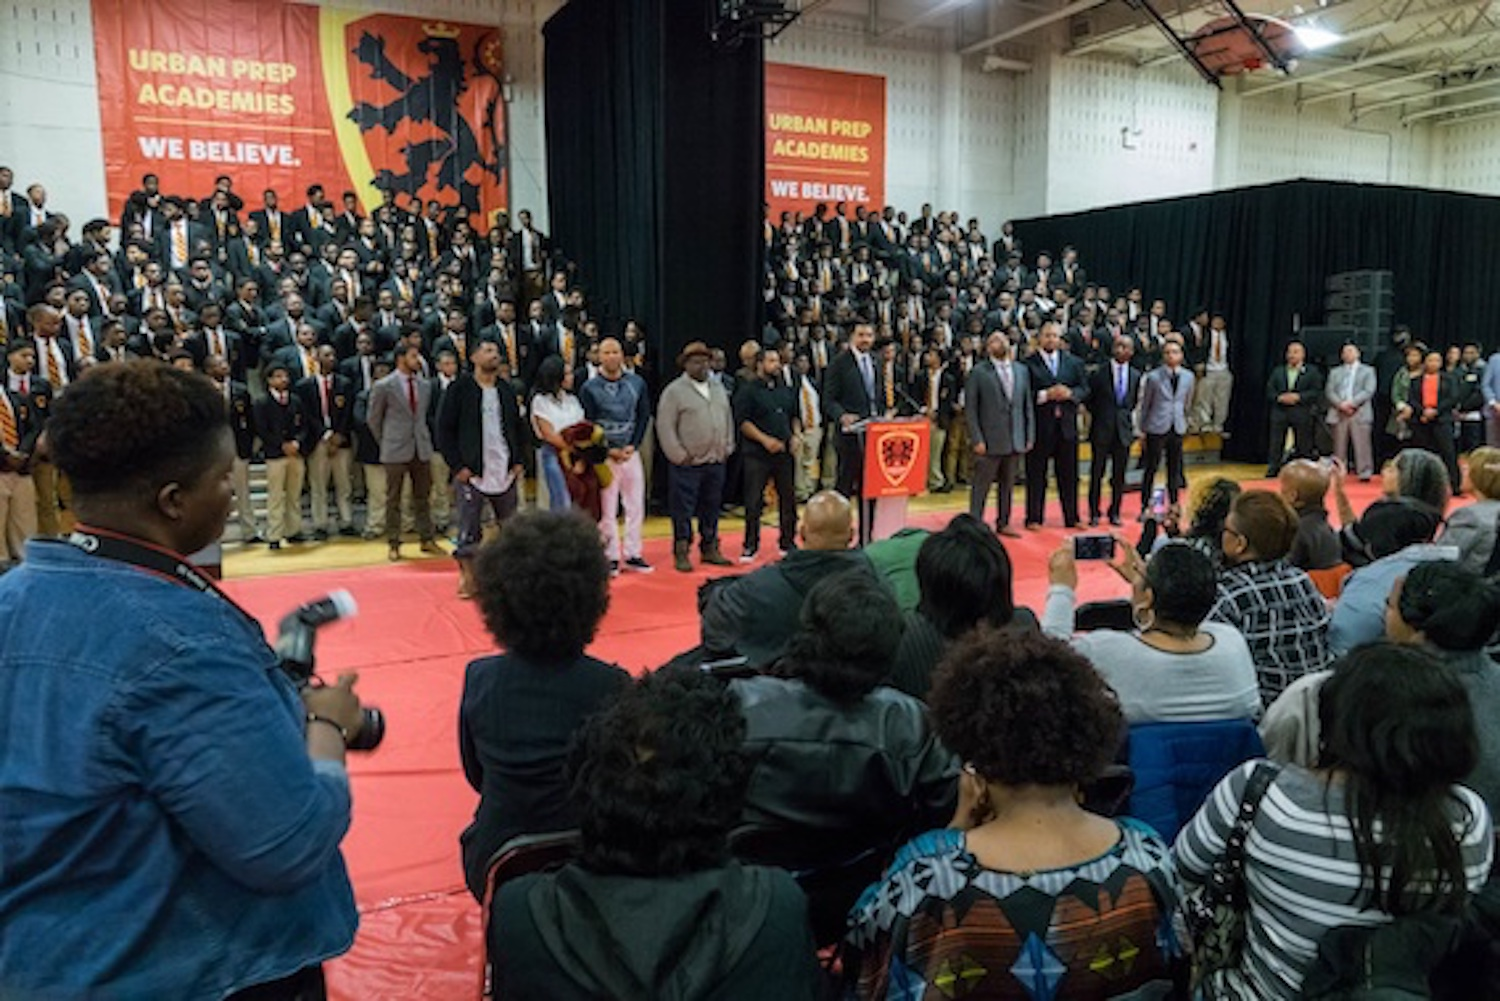 - Student achievement was celebrated with great enthusiasm, when JT client Urban Prep announced that 100% of its 252 seniors have been admitted to a four-year college or university.